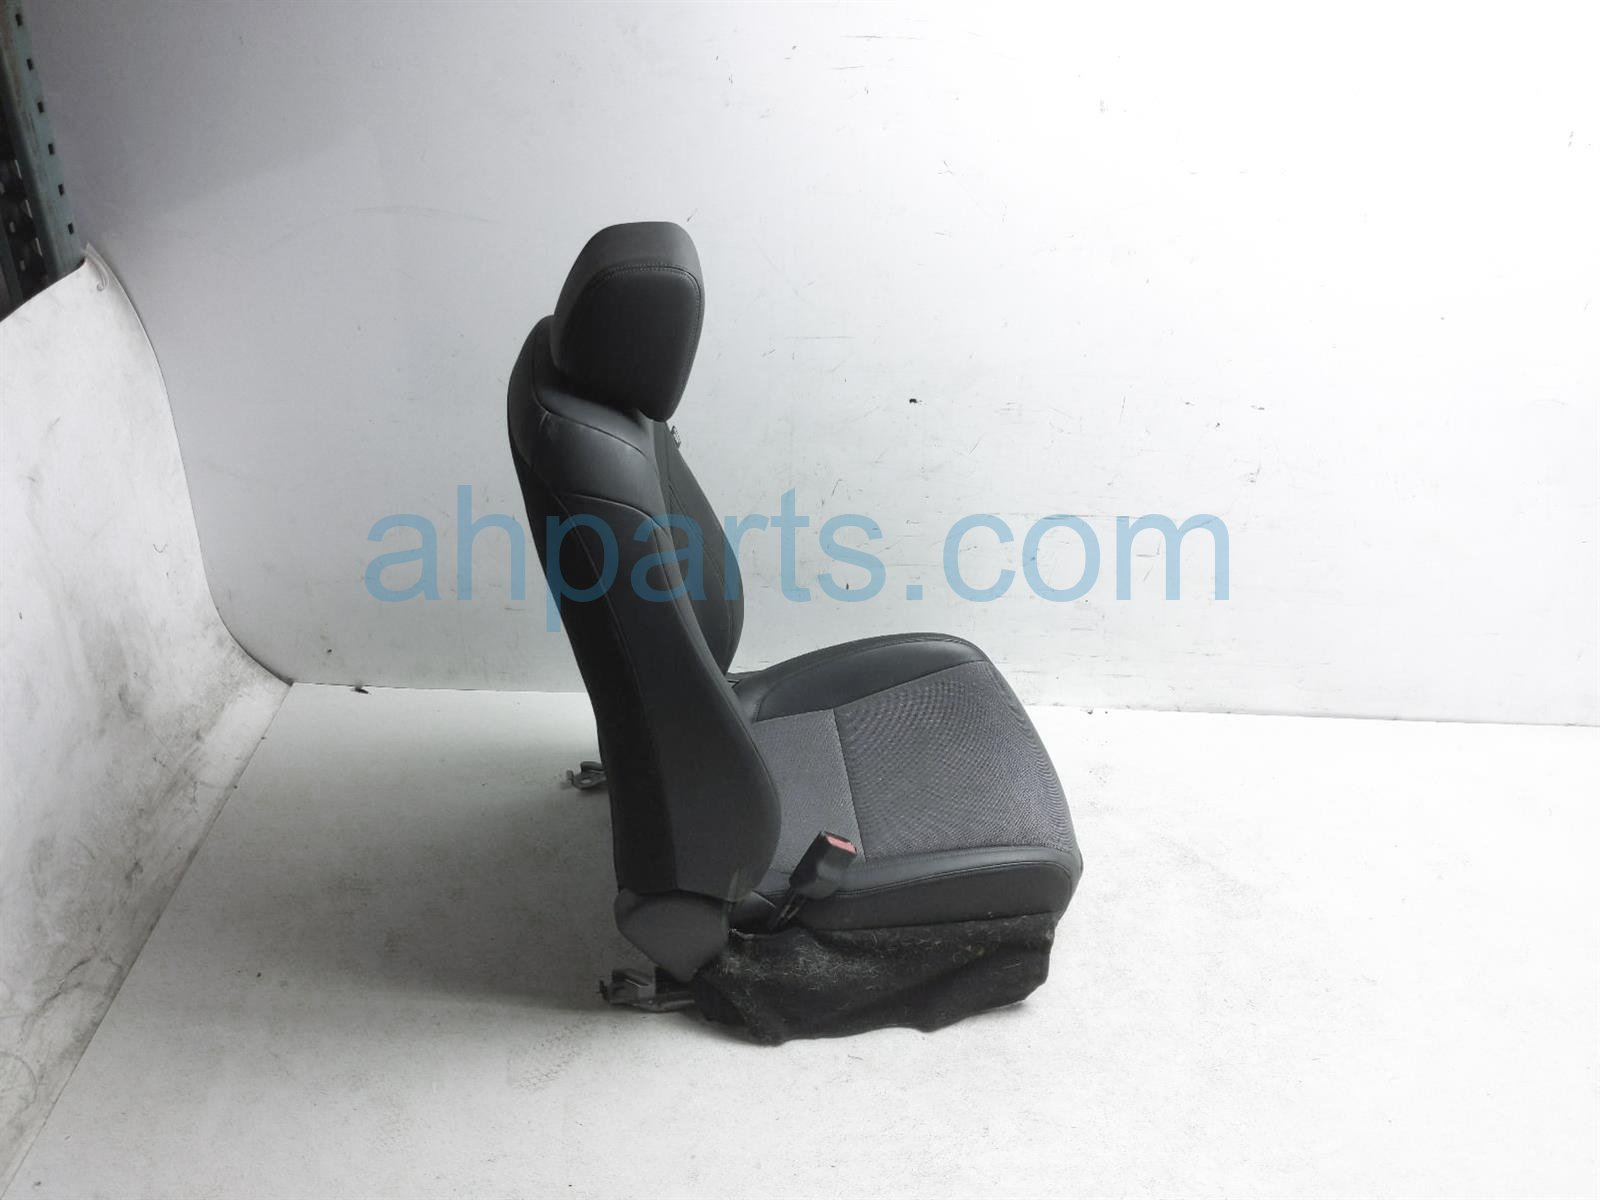 Sold 2018 Honda Clarity Front Driver Seat   Black   W/o Airbag*** 81531 TRW A21ZB Replacement